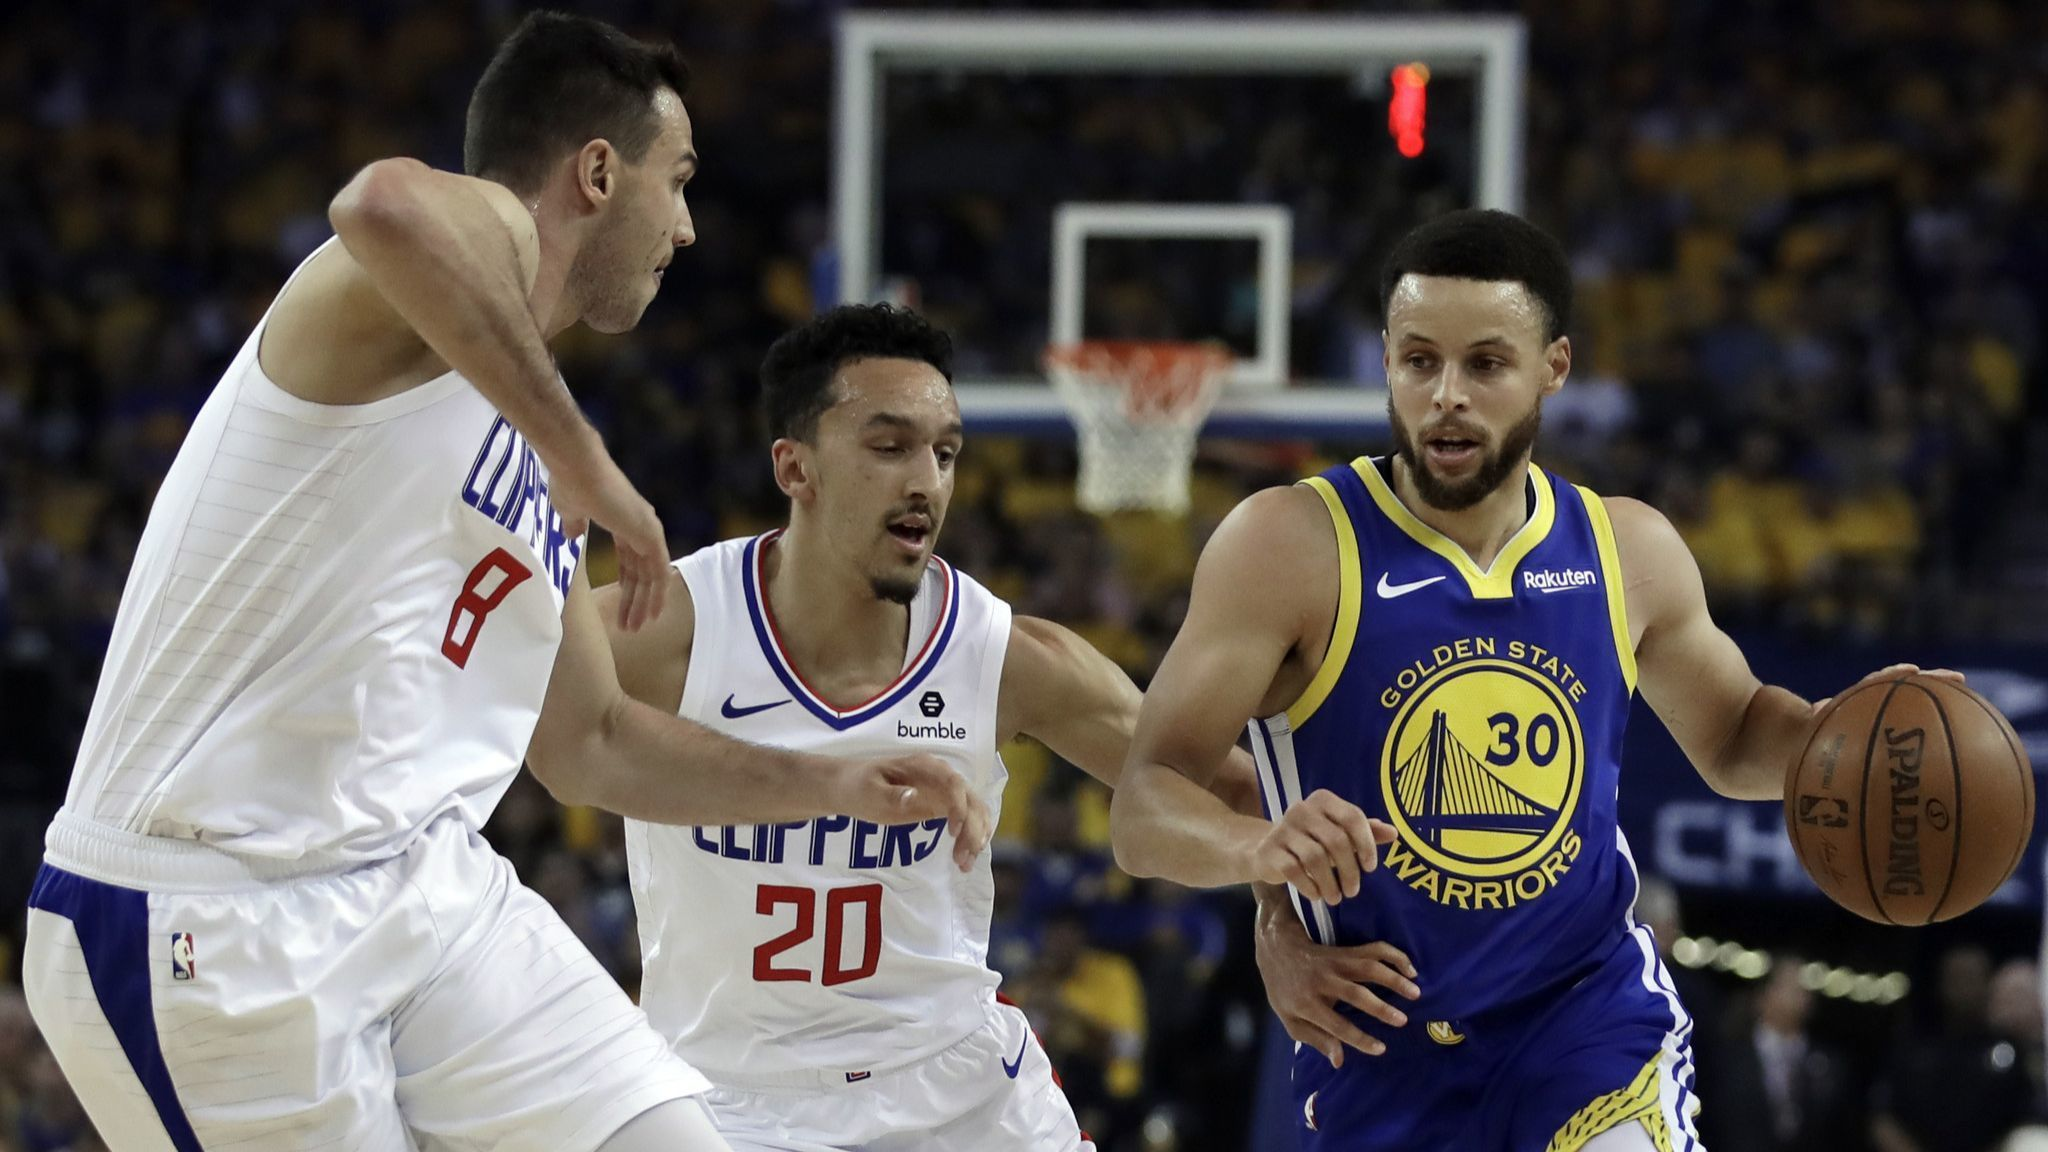 The Sports Report: Clippers shock Warriors, force Game 6